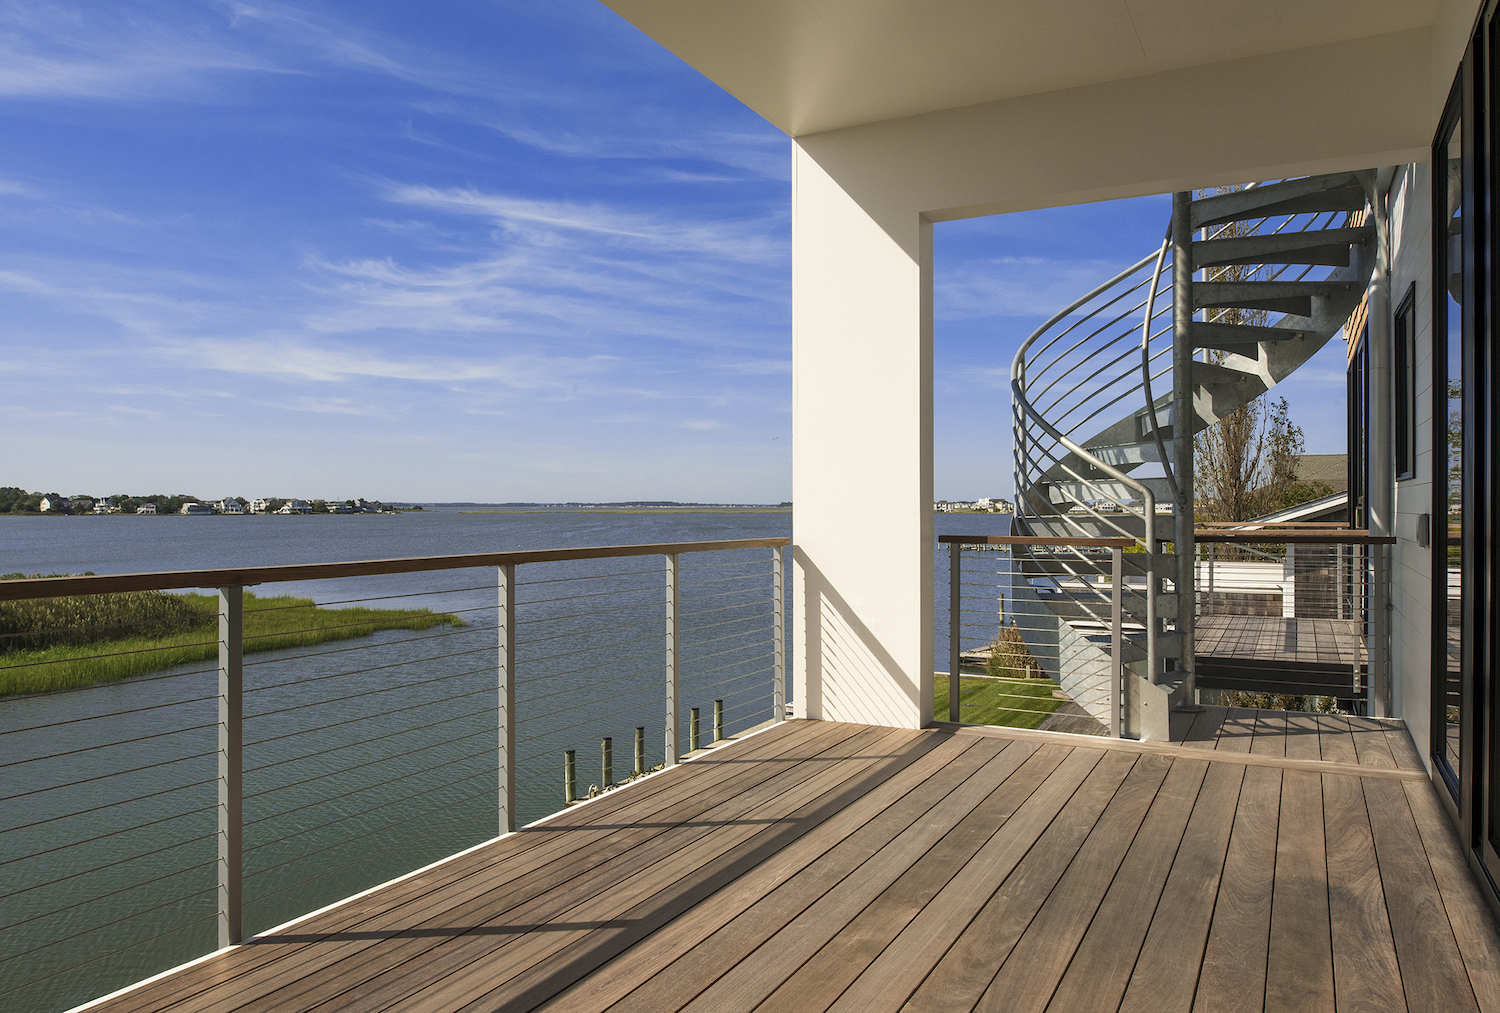 McInturff_Architects_Indian River Bay_House_08.jpg